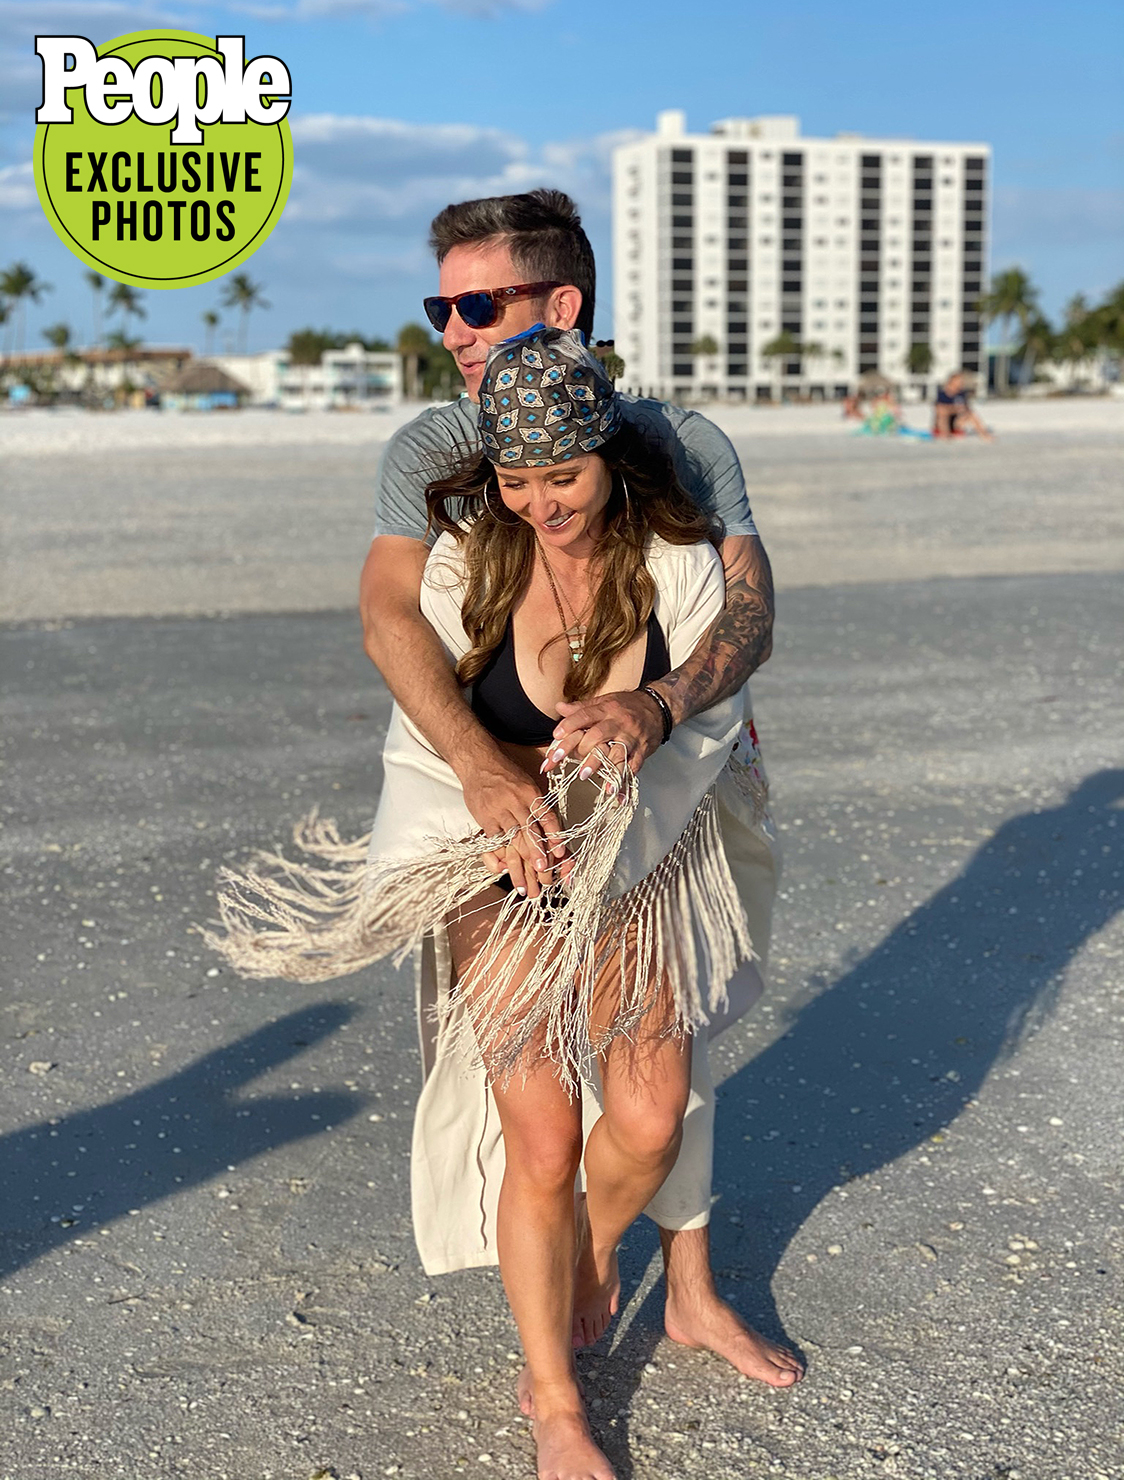 Exclusive Behind the scenes images of Craig & Mindy Campbell in the Never Mine music video shoot.Fort Myers, FL, May 25, 2021